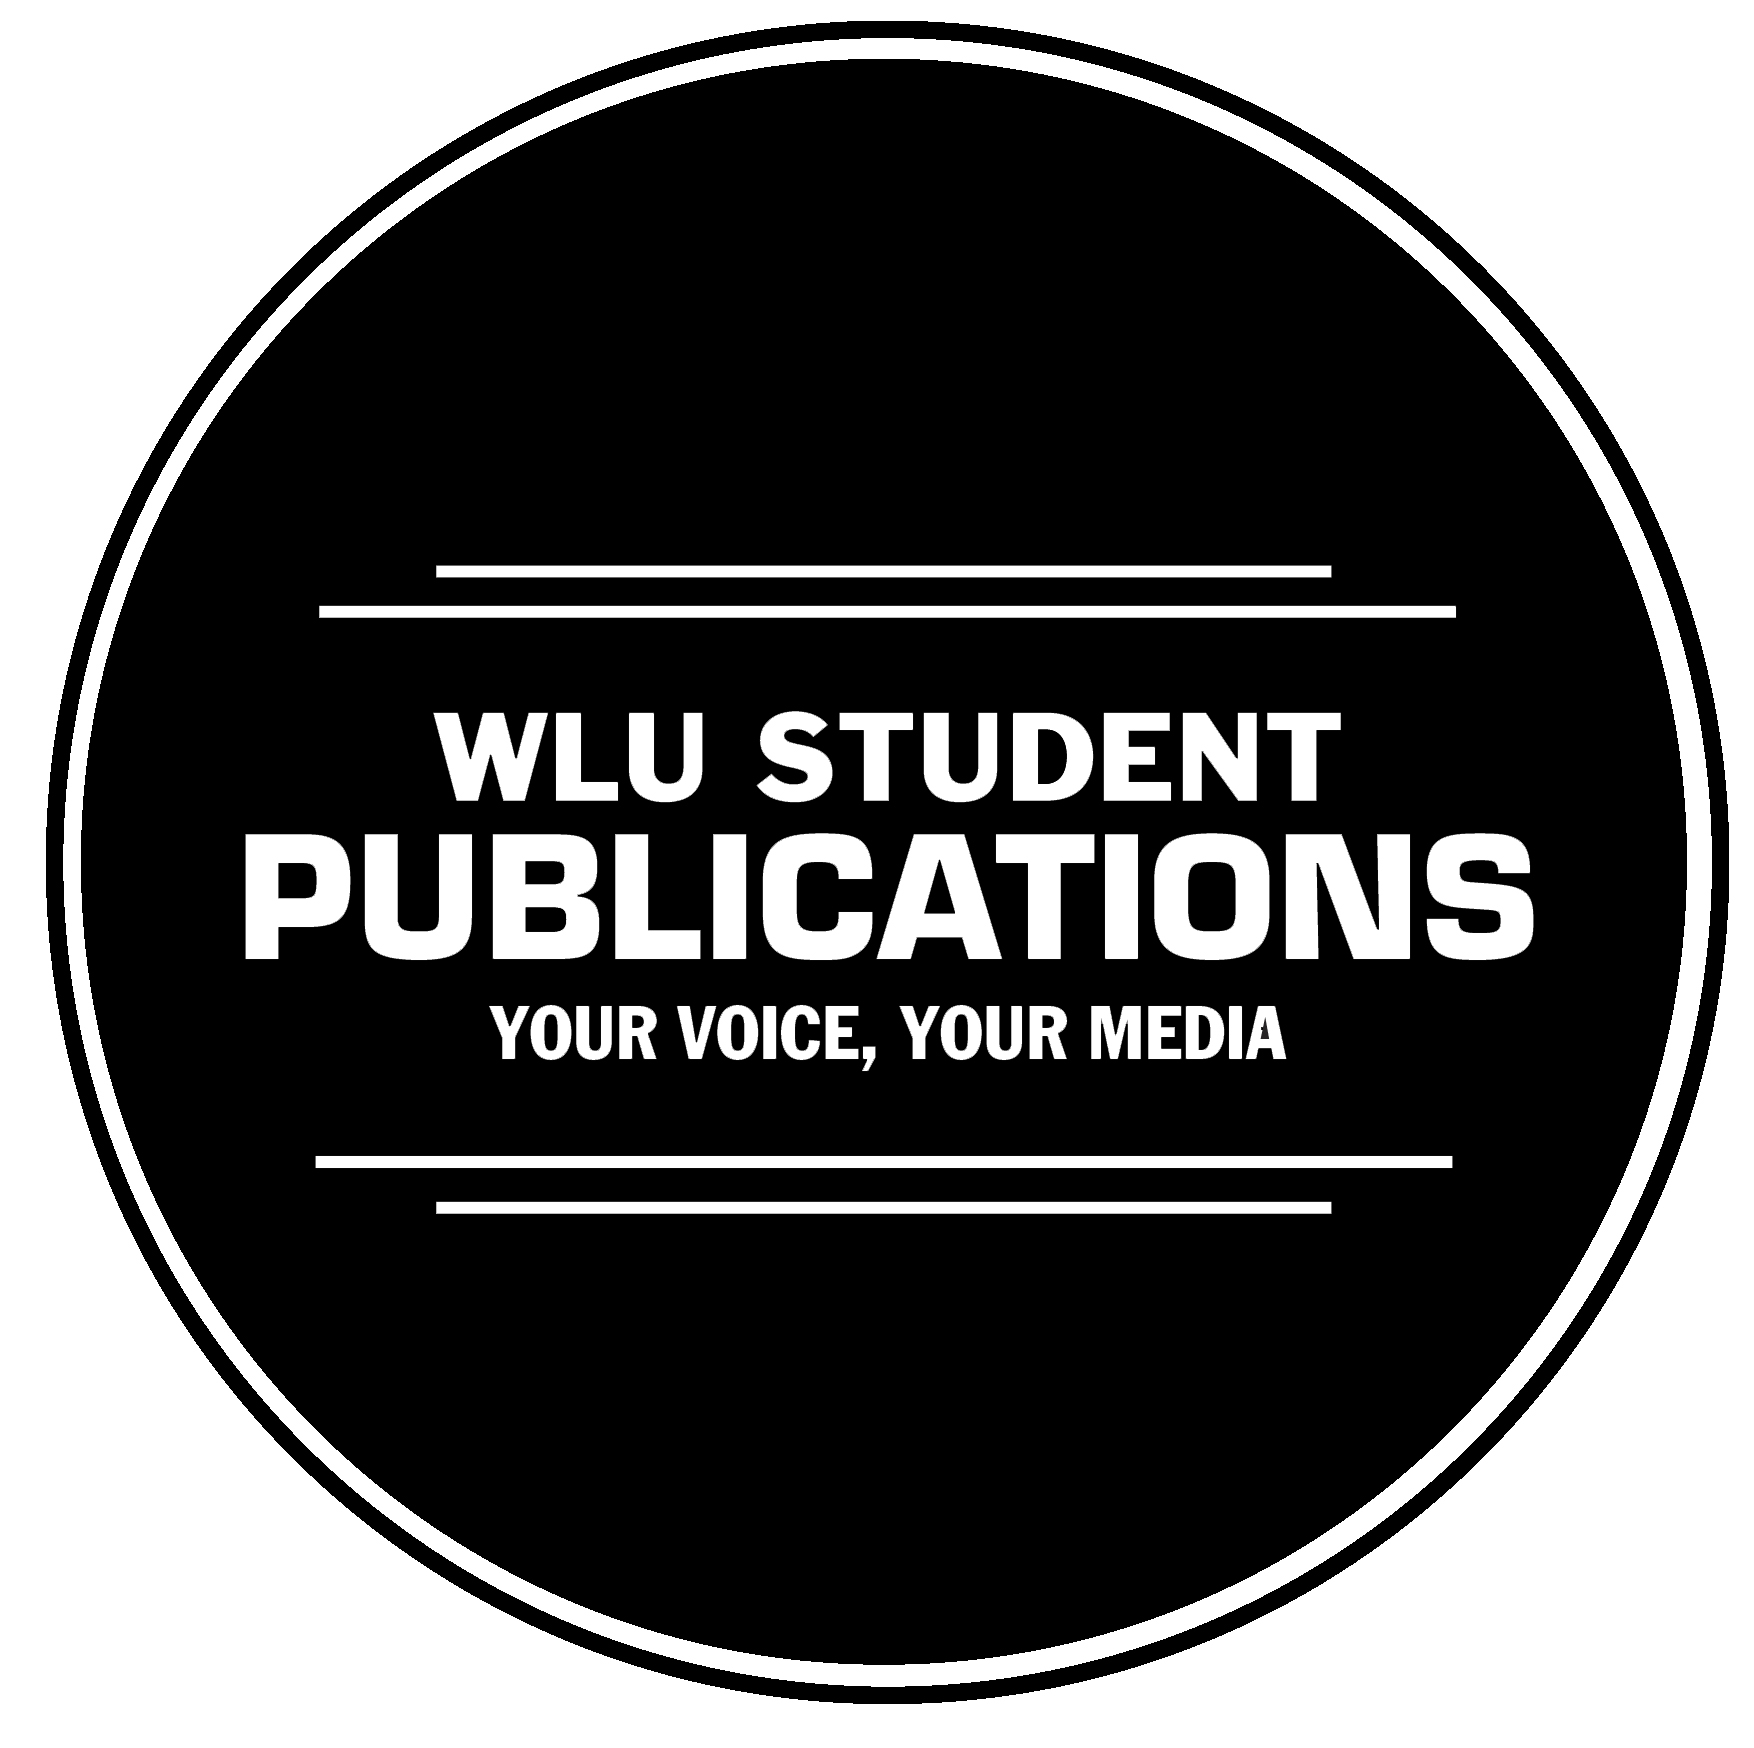 Meet your Student Publications candidates